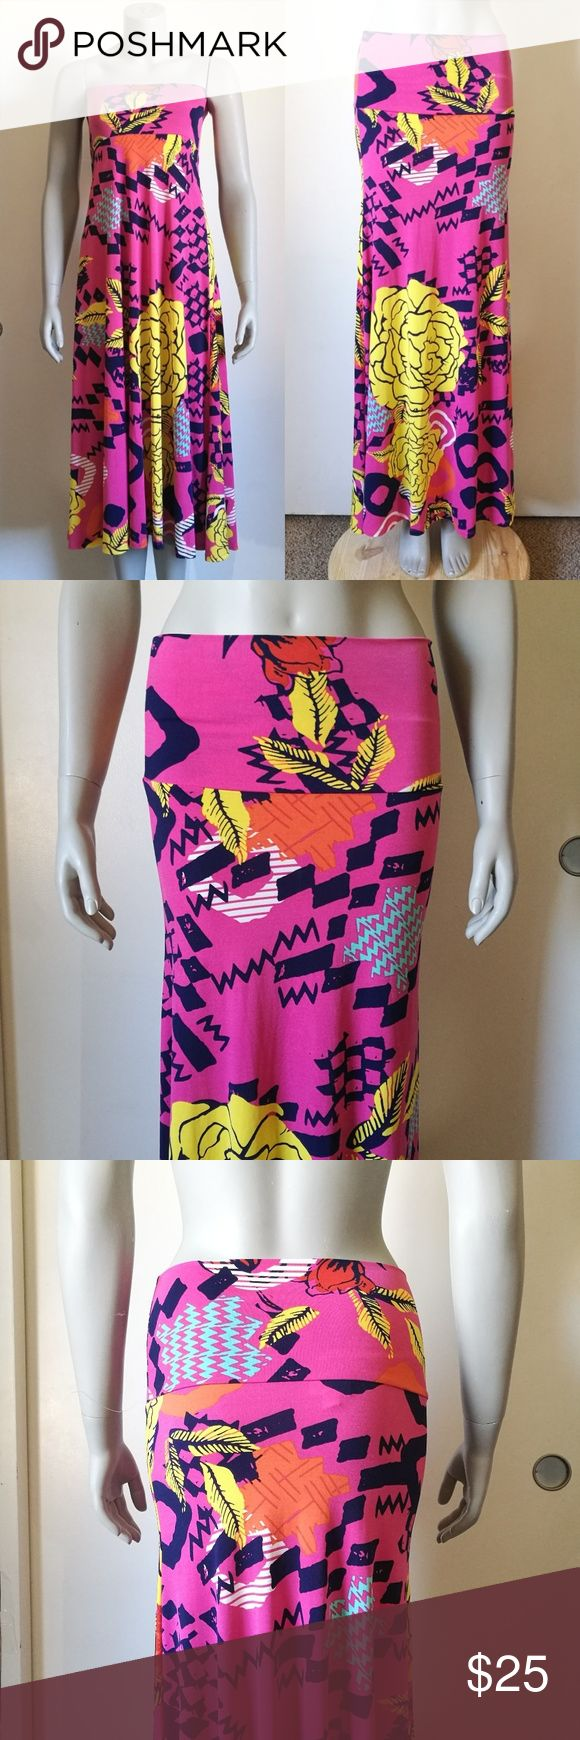 Lularoe Maxi Printed Skirt or Dress Size XXS Bright pink lularoe maxi. Versatile, looks great worn as a maxi skirt or a maxi tube dress. New without tags, has never been washed or worn. Size XXS. LuLaRoe Skirts Maxi